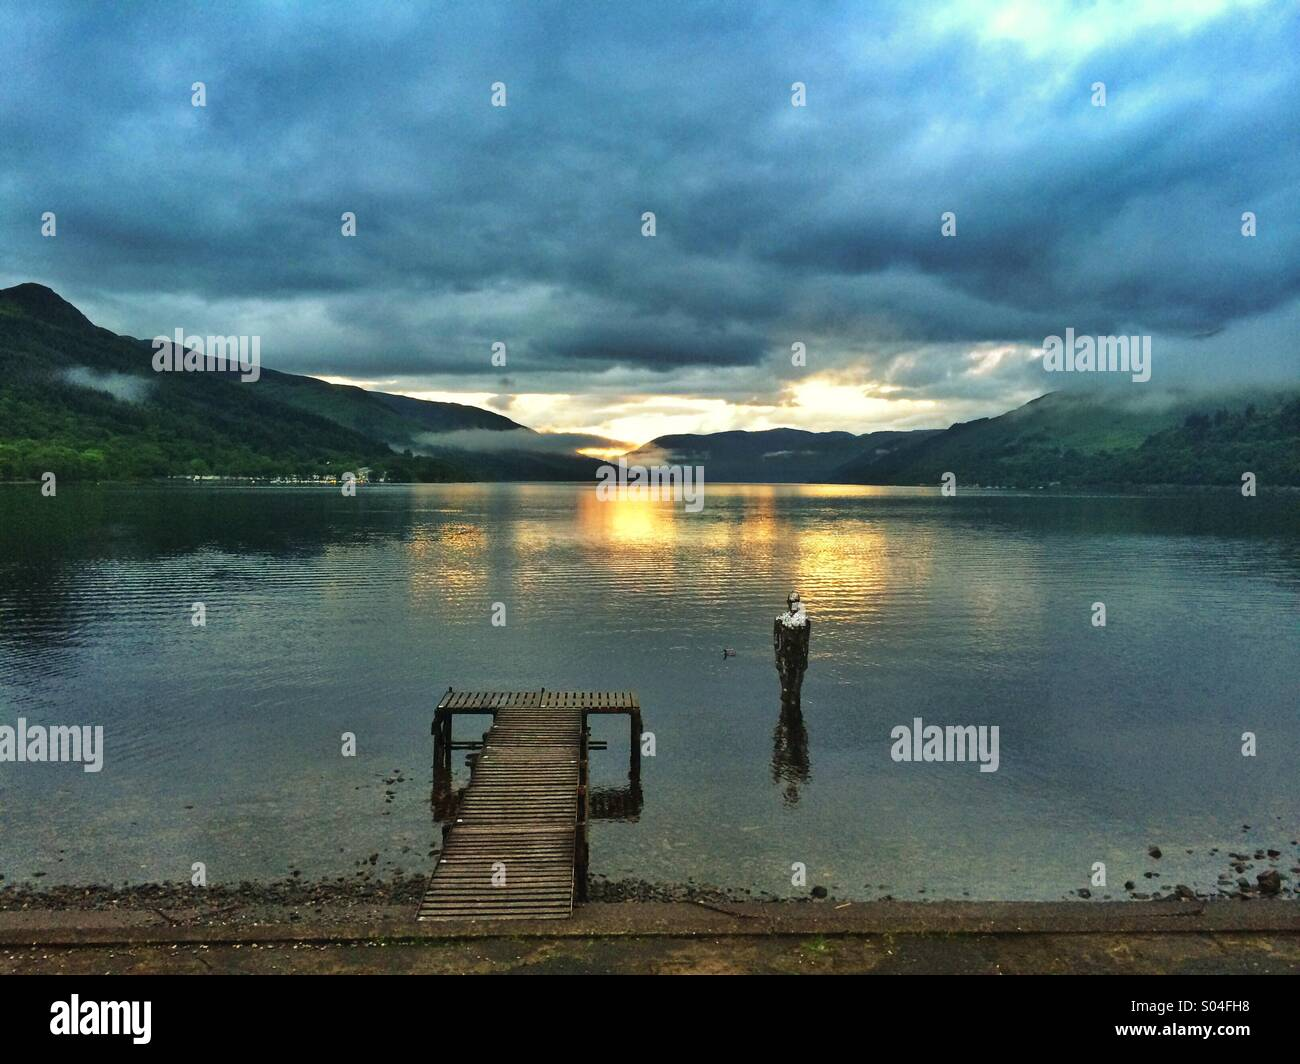 mirror man of the loch loch earn scotland stock photo royalty free image 309886676 alamy. Black Bedroom Furniture Sets. Home Design Ideas